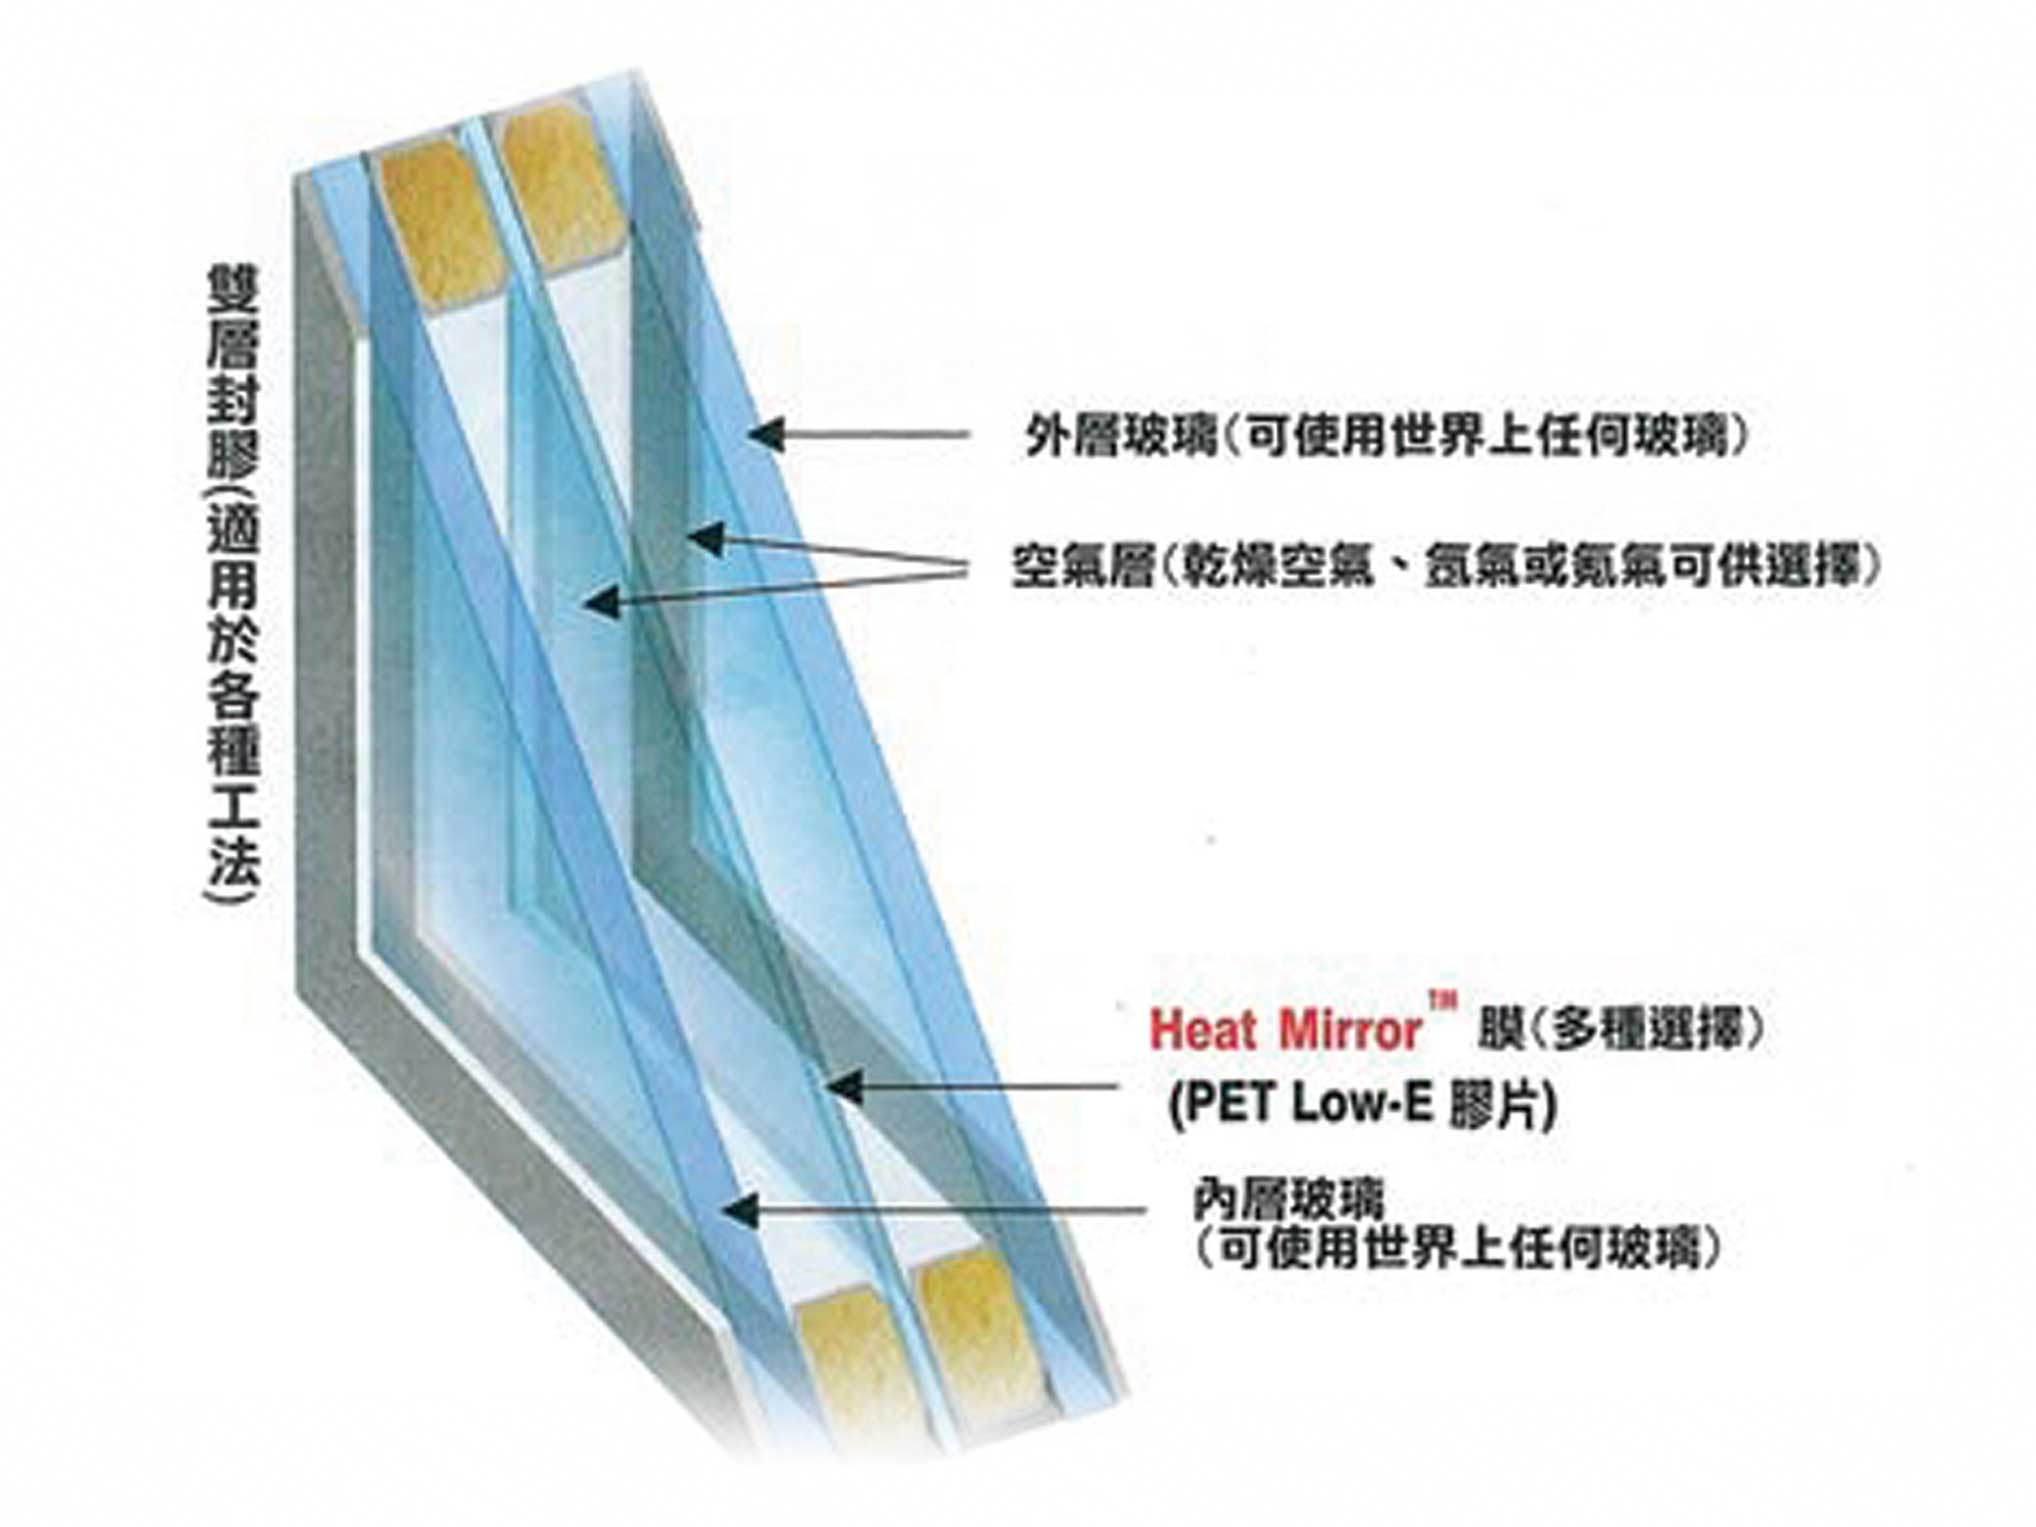 Insulation foam sheet for Thermo ply structural sheathing